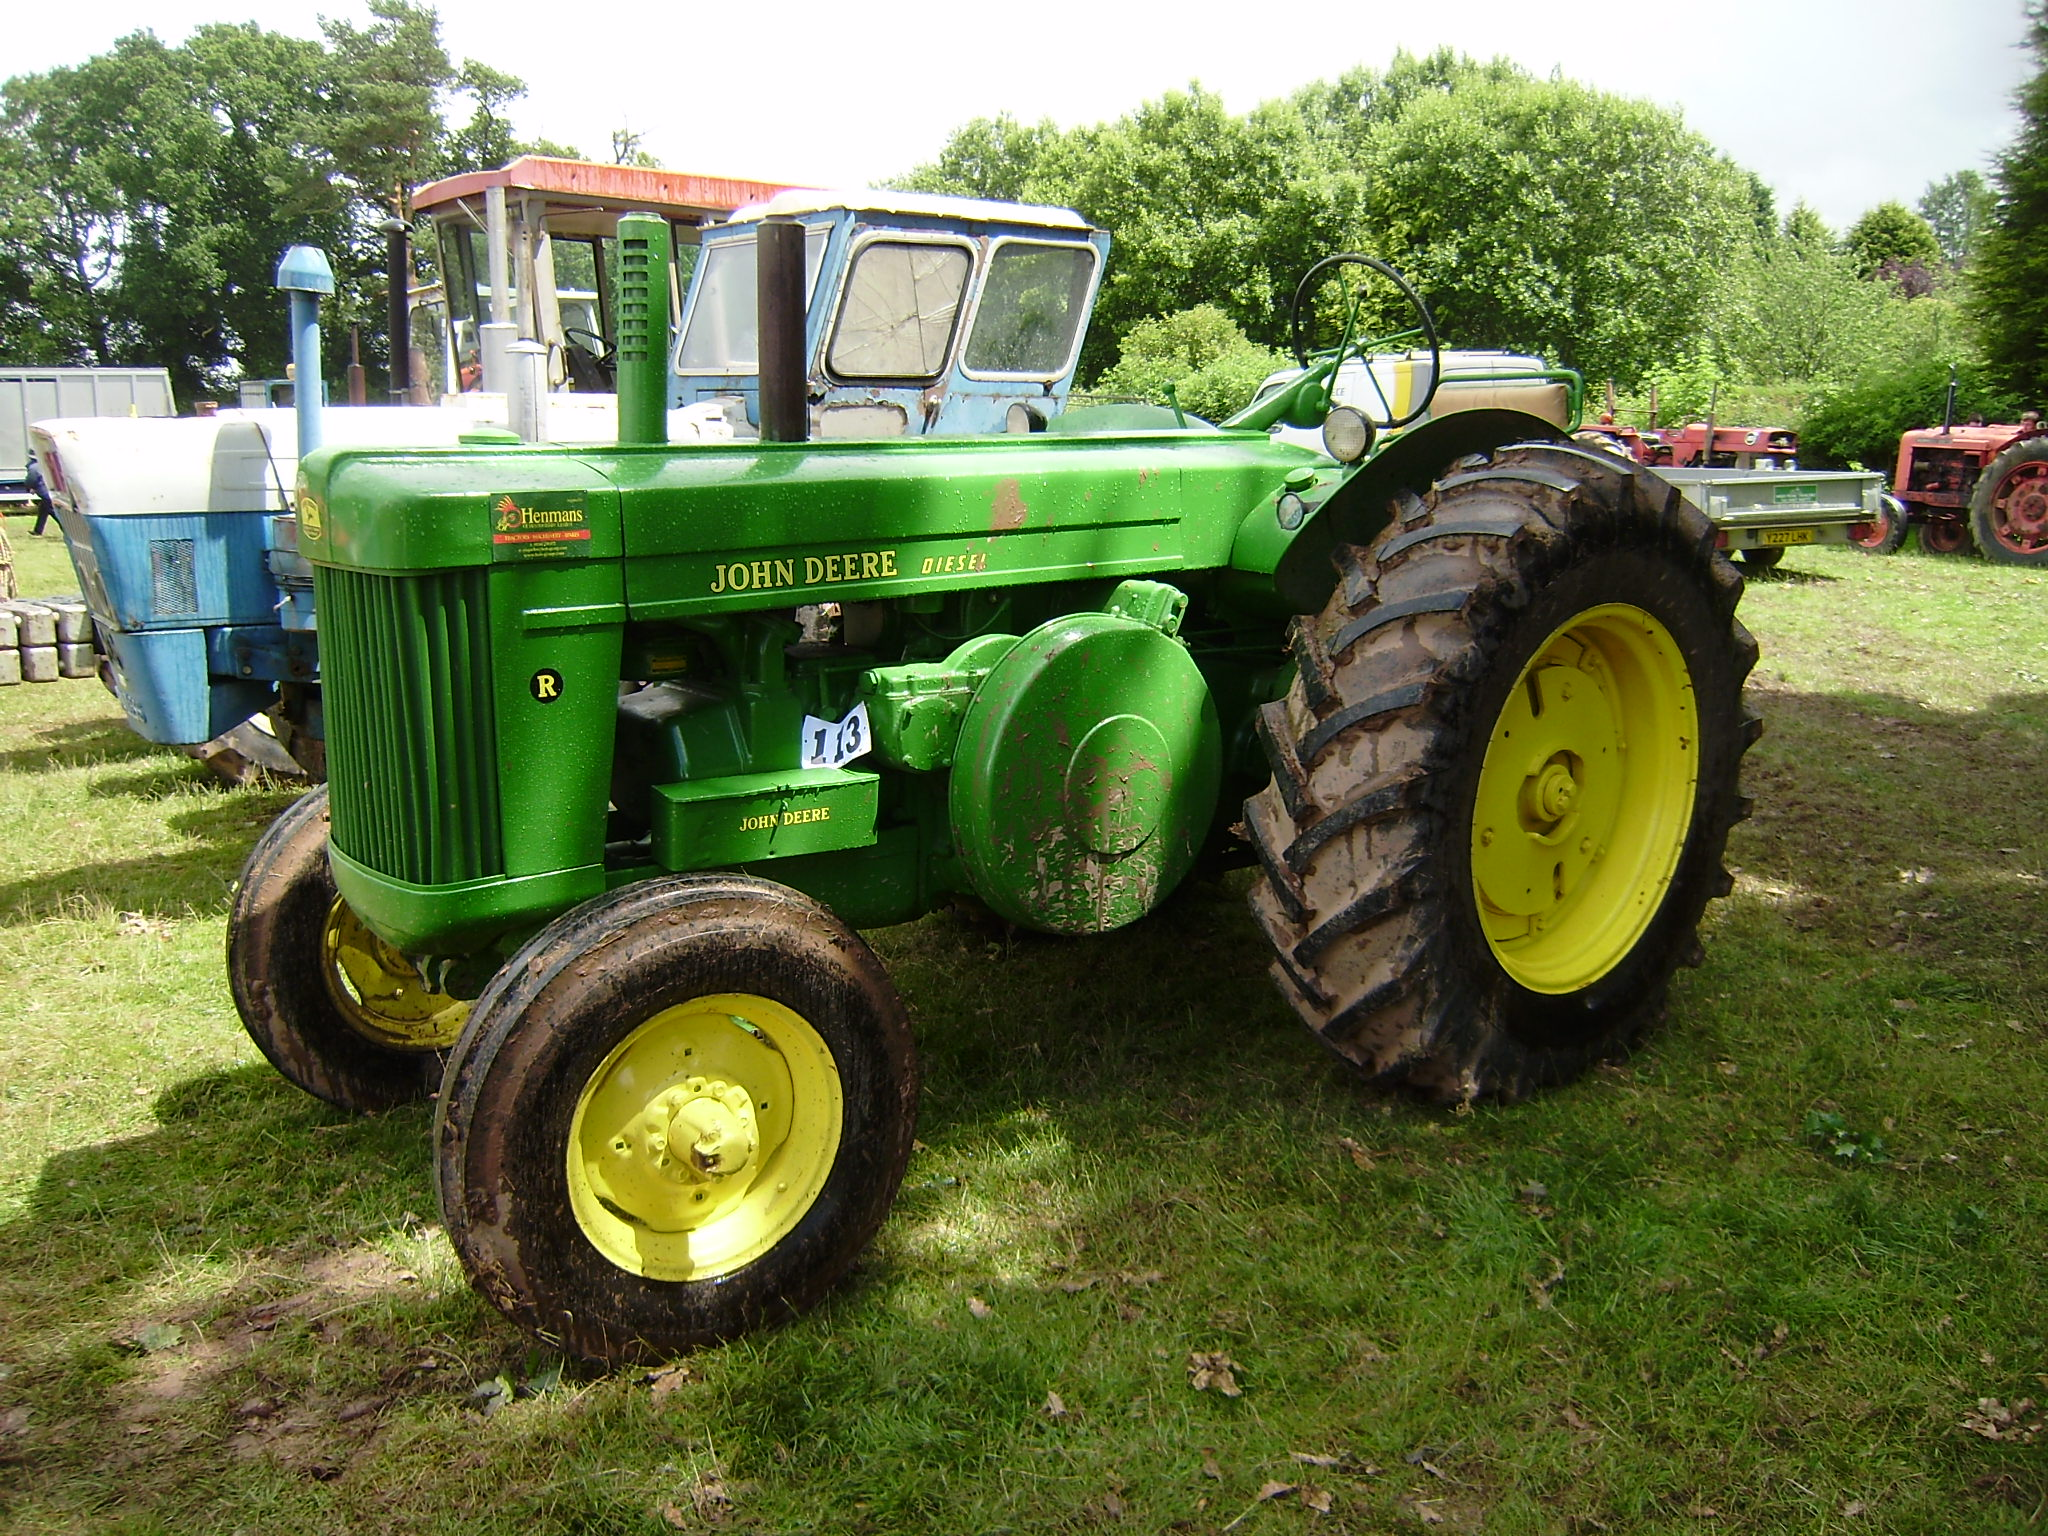 List Of John Deere Tractors Tractor Construction Plant Wiki 9610 Combine Wiring Diagram Fandom Powered By Wikia